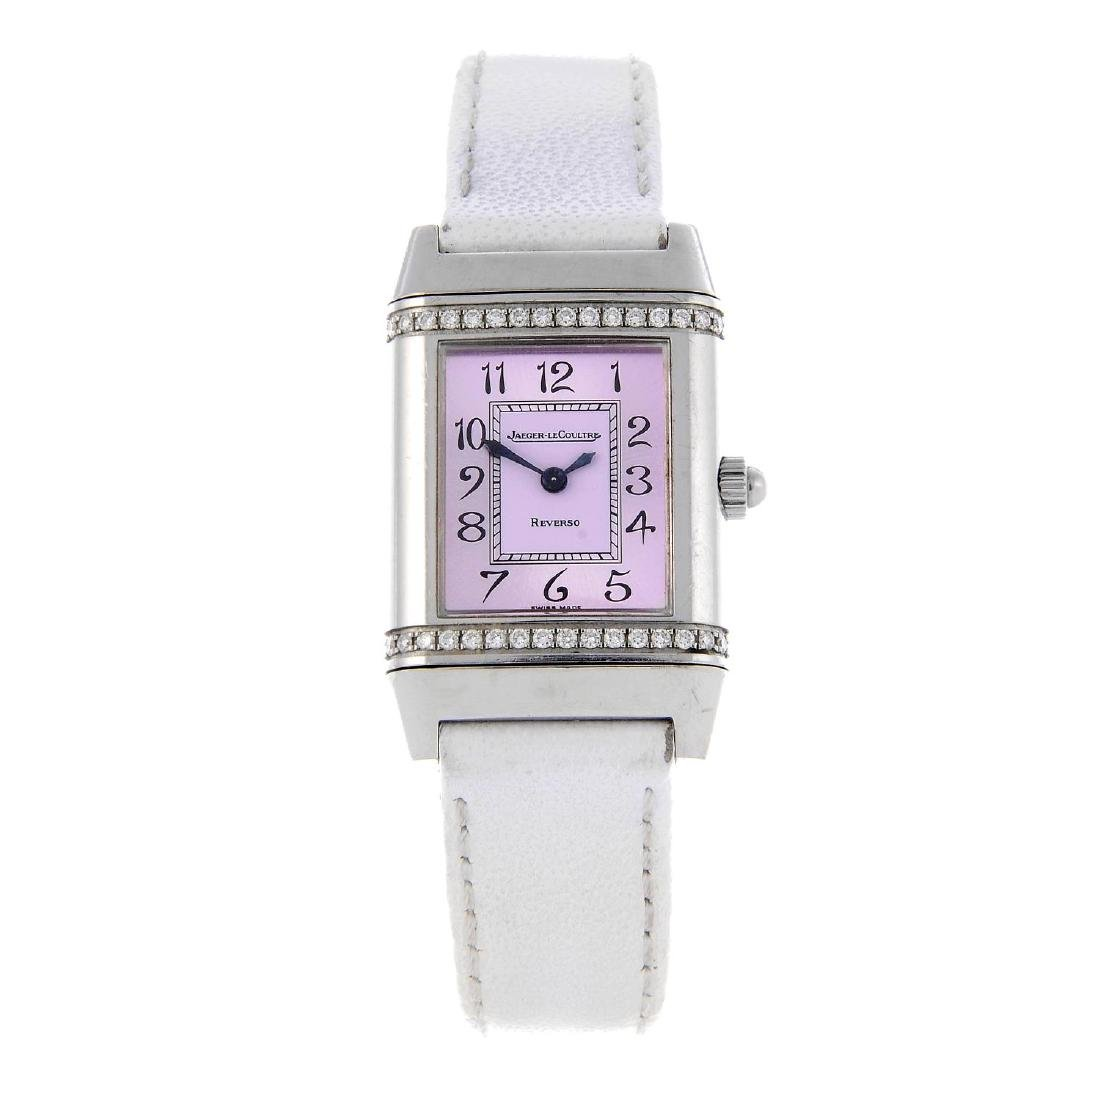 JAEGER-LECOULTRE - a lady's Reverso wrist watch.